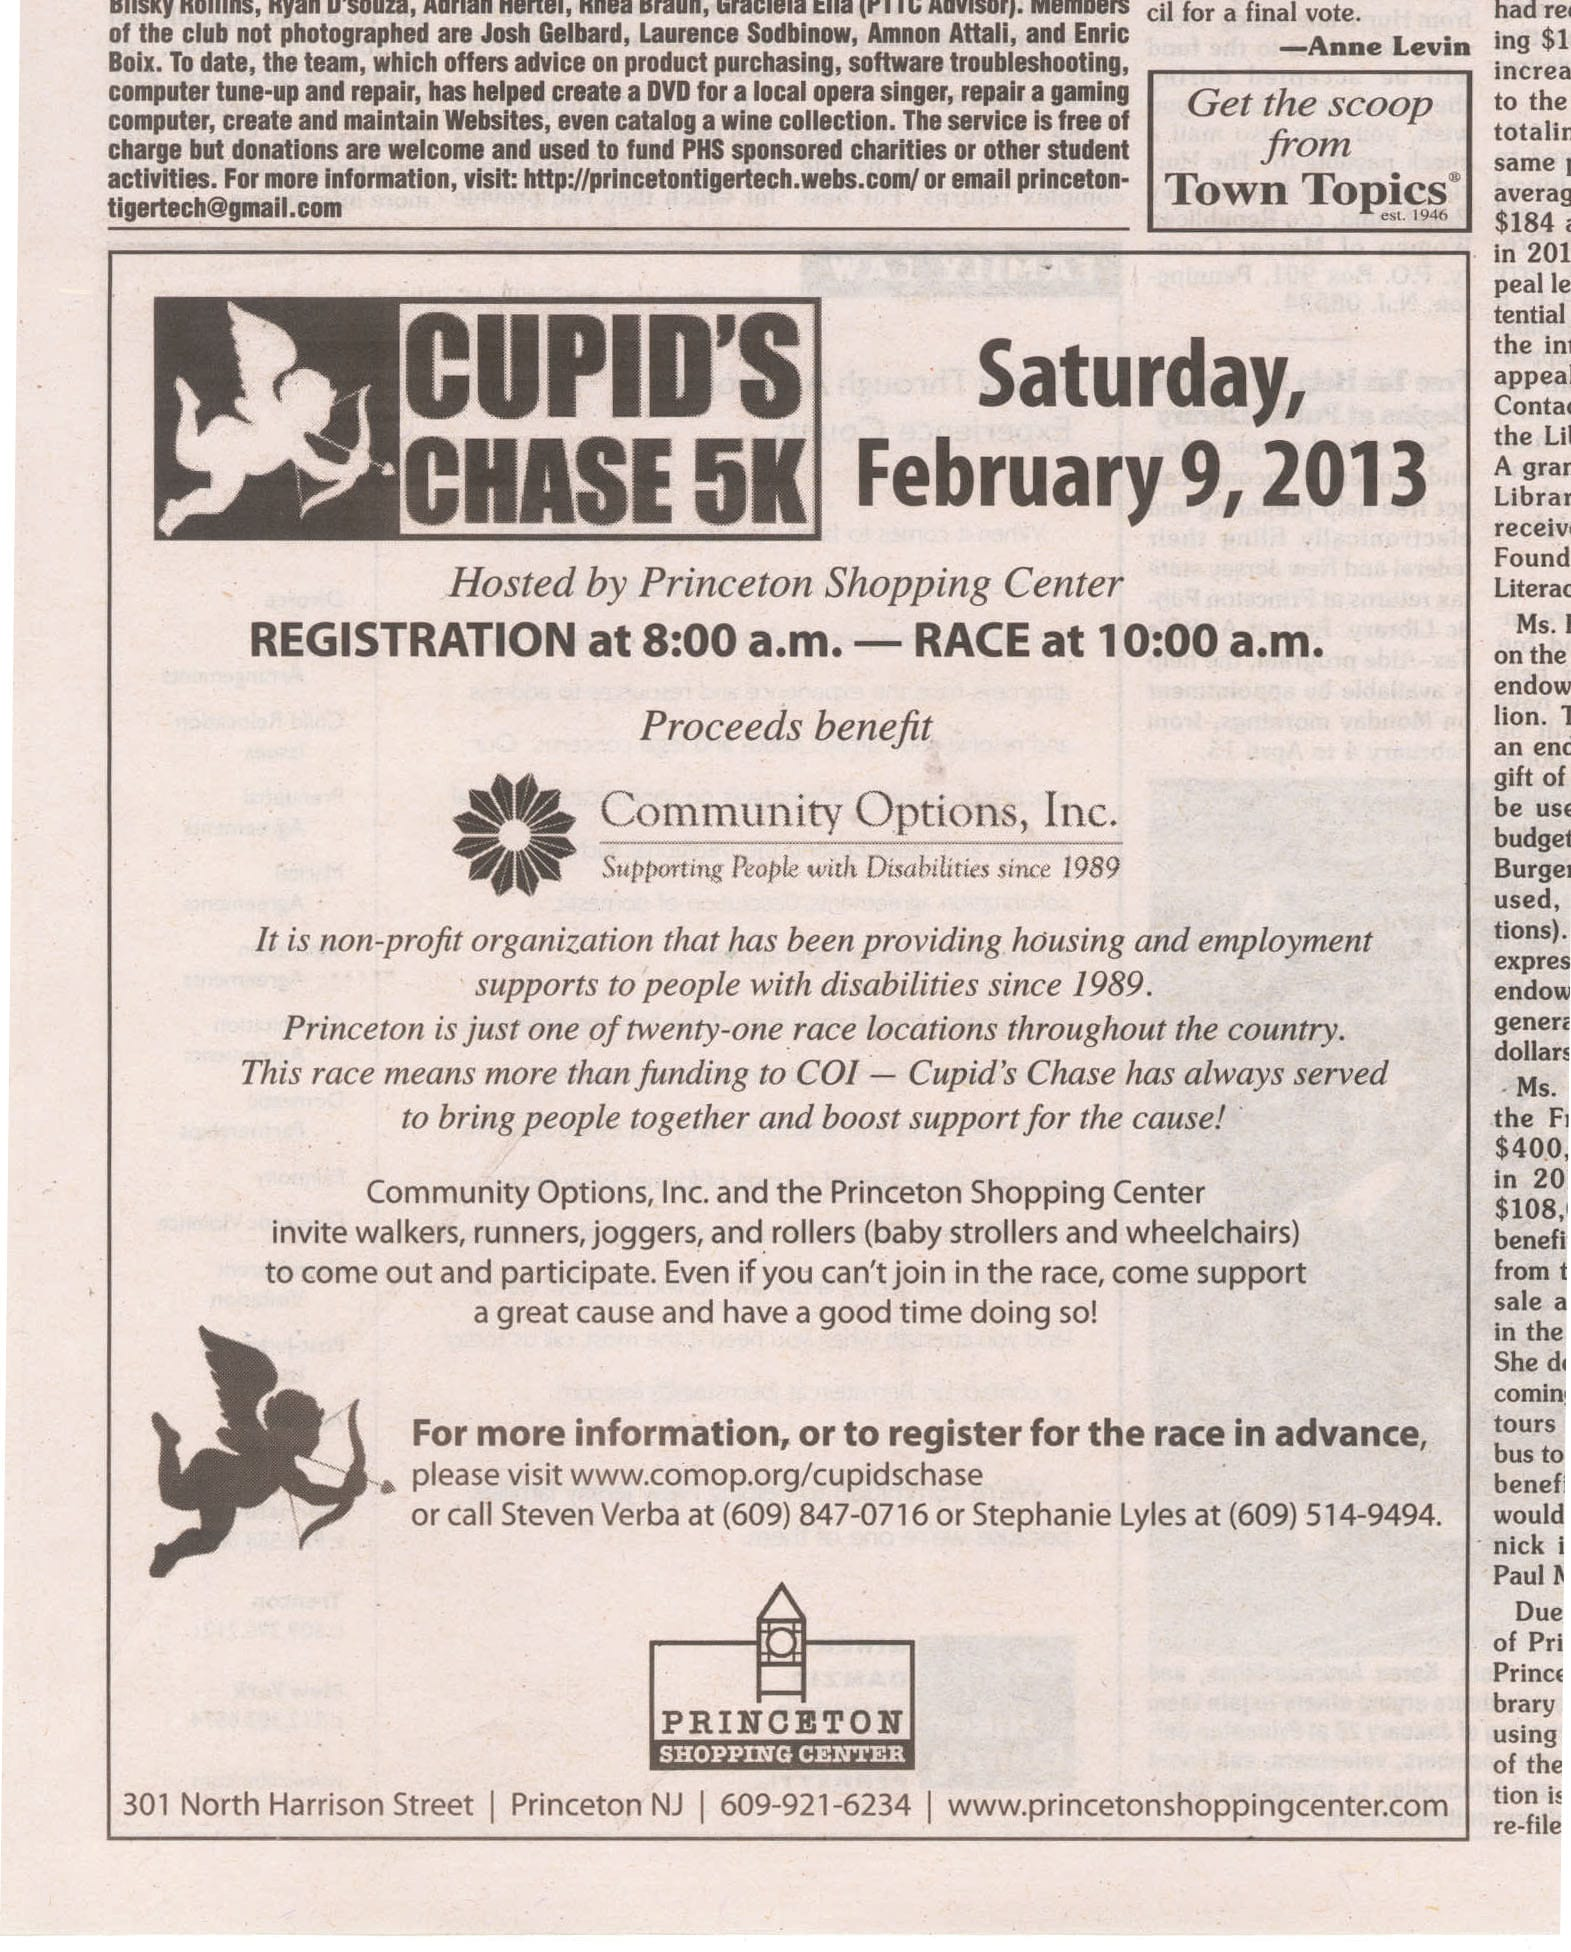 Cupid's Chase 5k Saturday, February 9, 2013